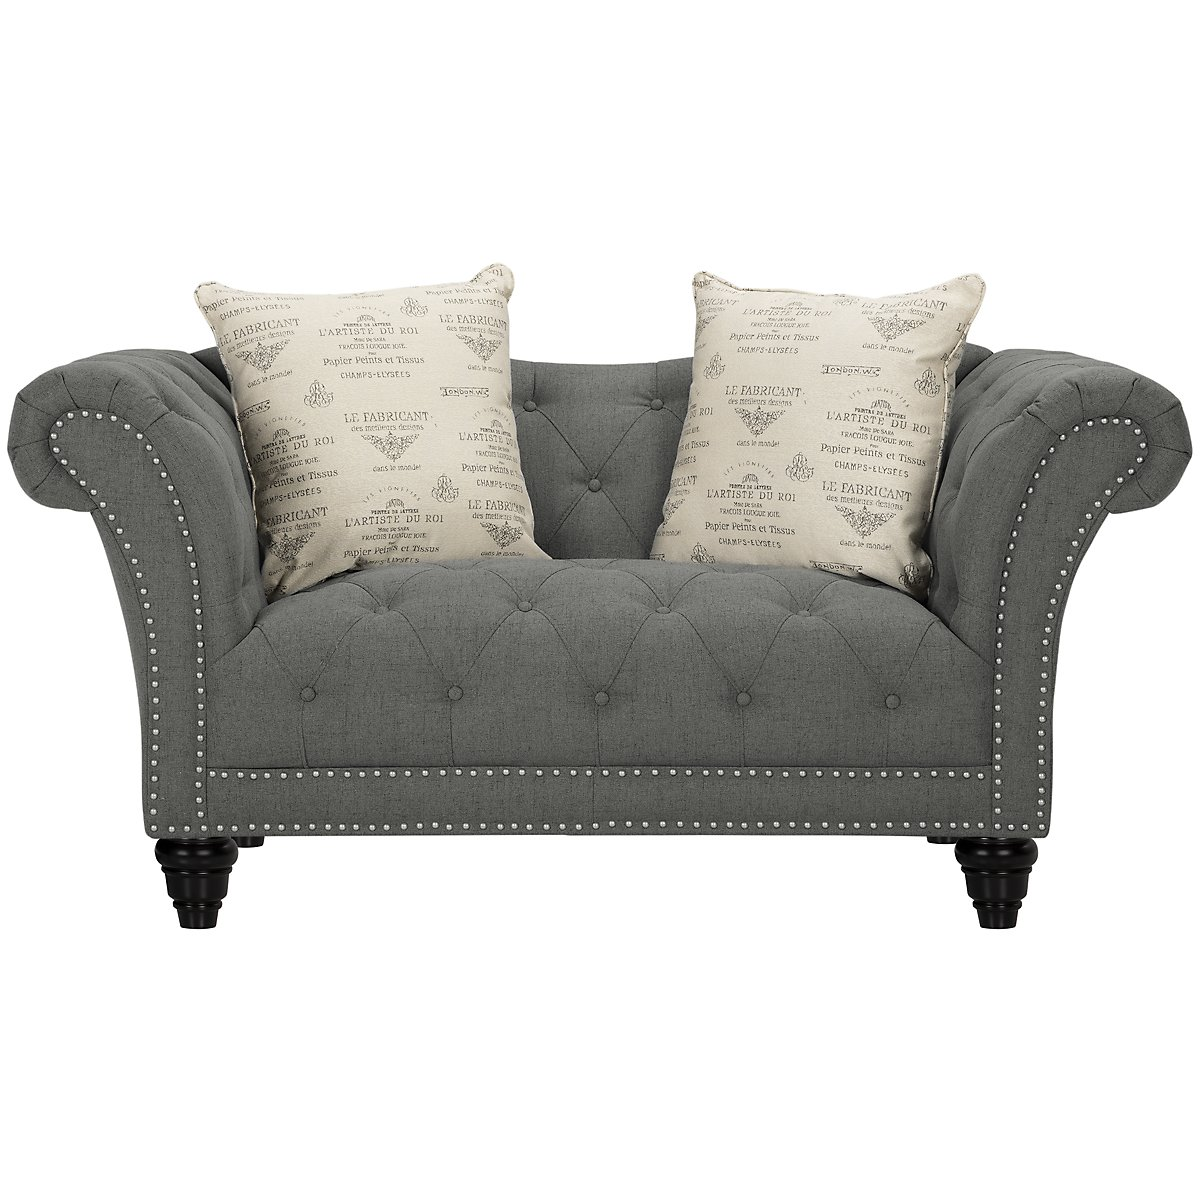 City Furniture: Hutton Dk Gray Fabric Living Room